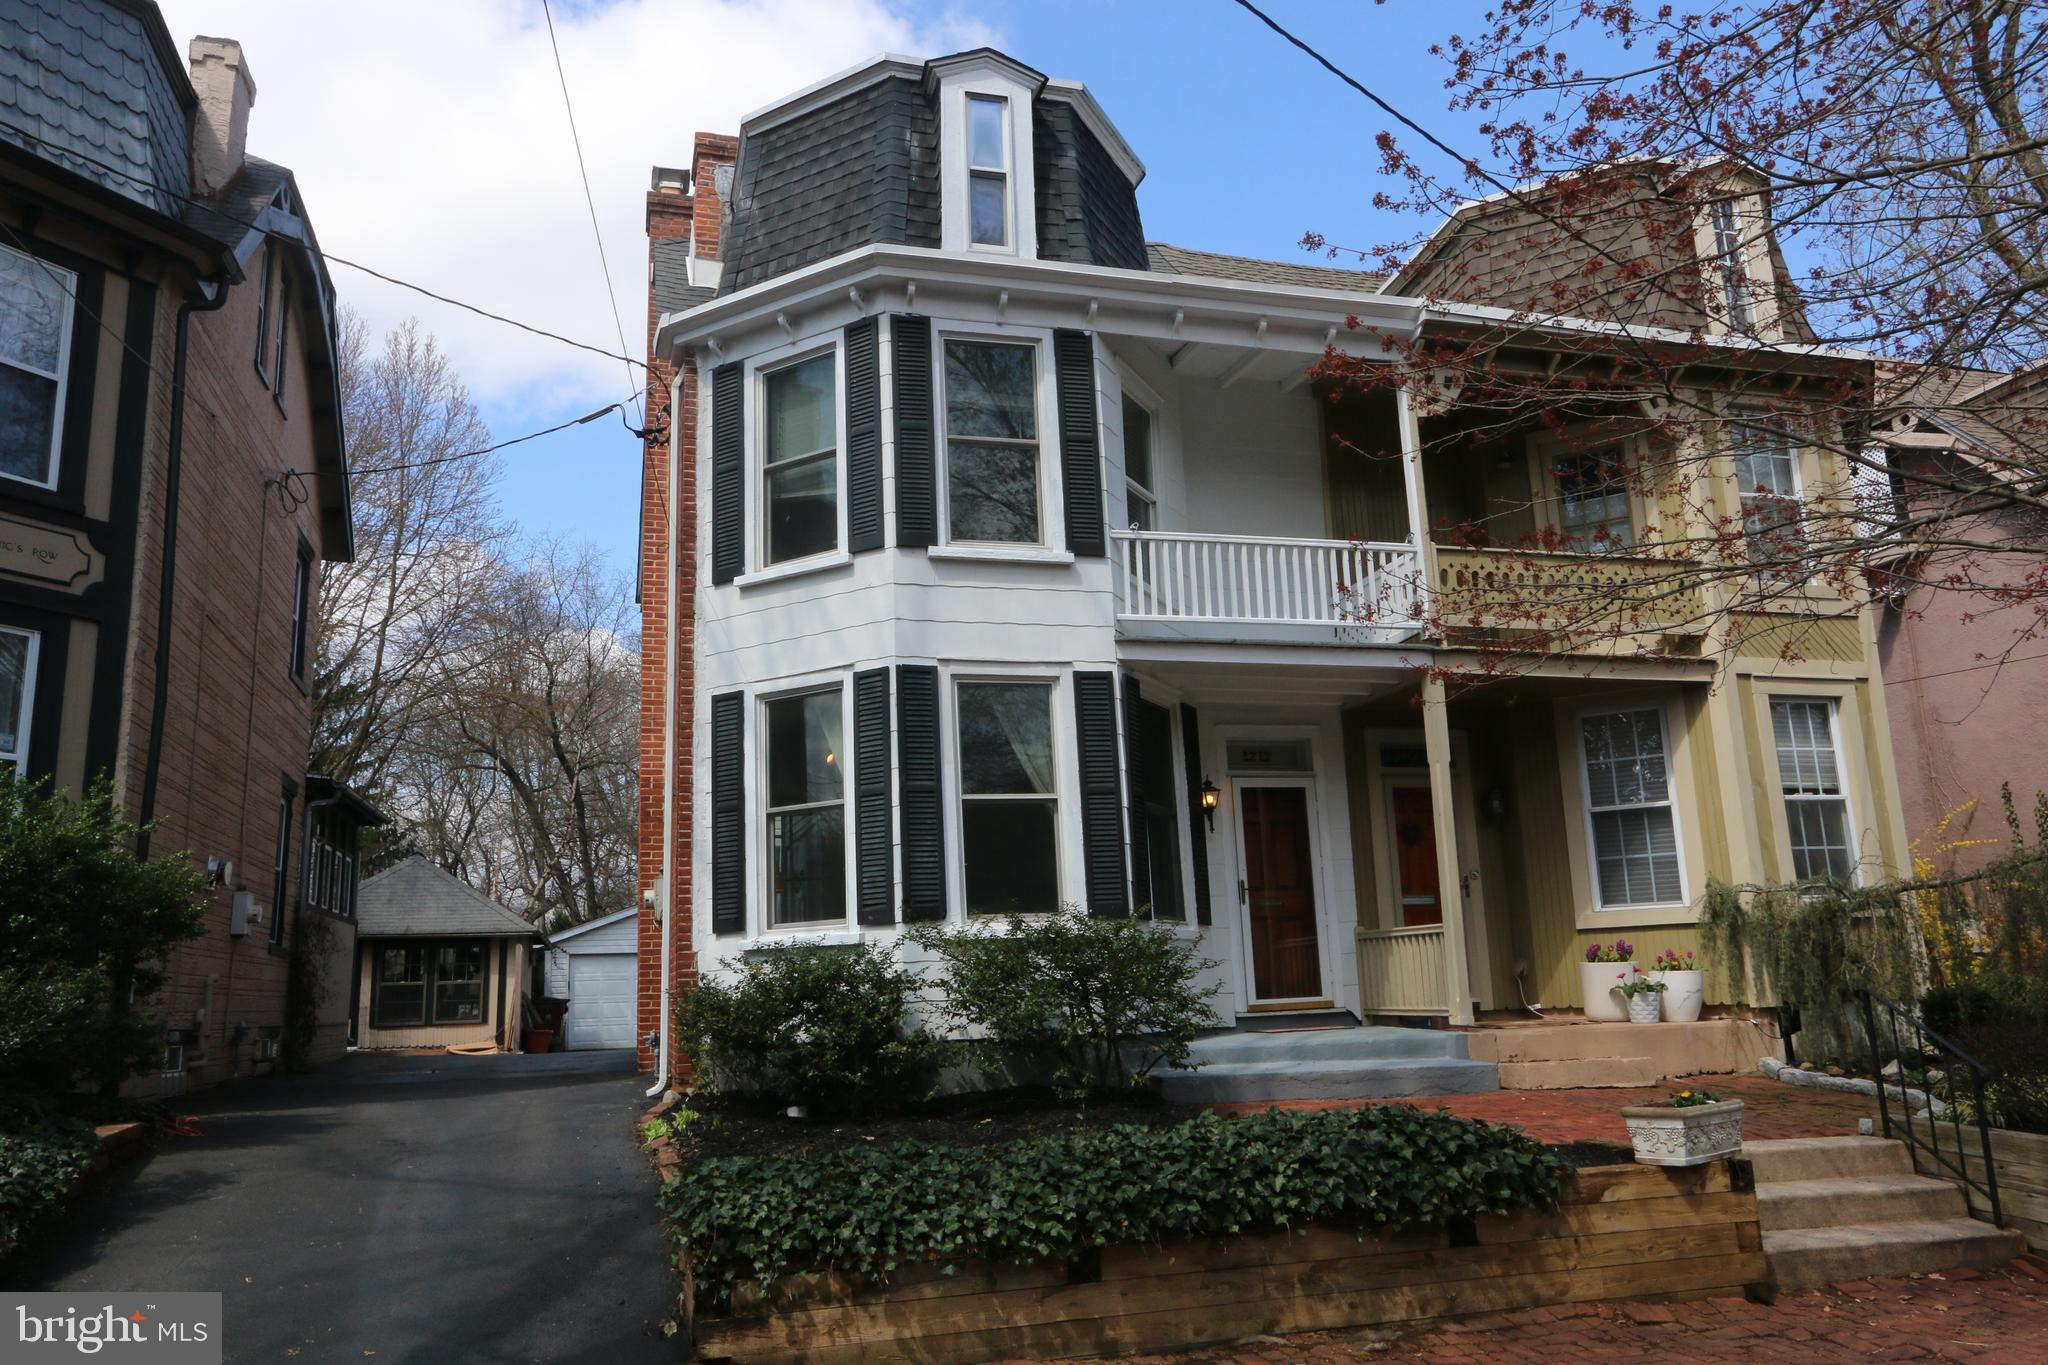 As you stroll the antique brick paver sidewalks & marvel at the turn-of-the-century architecture that welcomes you  to Trolley Square's rarely-available Mechanics Row, consider 1717 N Rodney Street. This well-maintained, three-story, semi-detached home is contiguous with the city of Wilmington's Brandywine Park, offering ease of access to recreation as well as the coveted amenities of pharmacy, grocery & nightlife.  Enter a bygone era where exposed brick walls and hardwood floors are warmed by a raised-slate hearth Fireplace, wide base mouldings are the rule, & where your Master Suite has a Master Bath, an excess of closet space and a french door that opens to a porch, enabling you to take in the sun or, watch tennis being played on nearby courts.  A Two-car, Detached Garage & driveway offer plentiful off-street parking, a rarity within city limits. Discover why Wilmington's Trolley Square is the place to be!